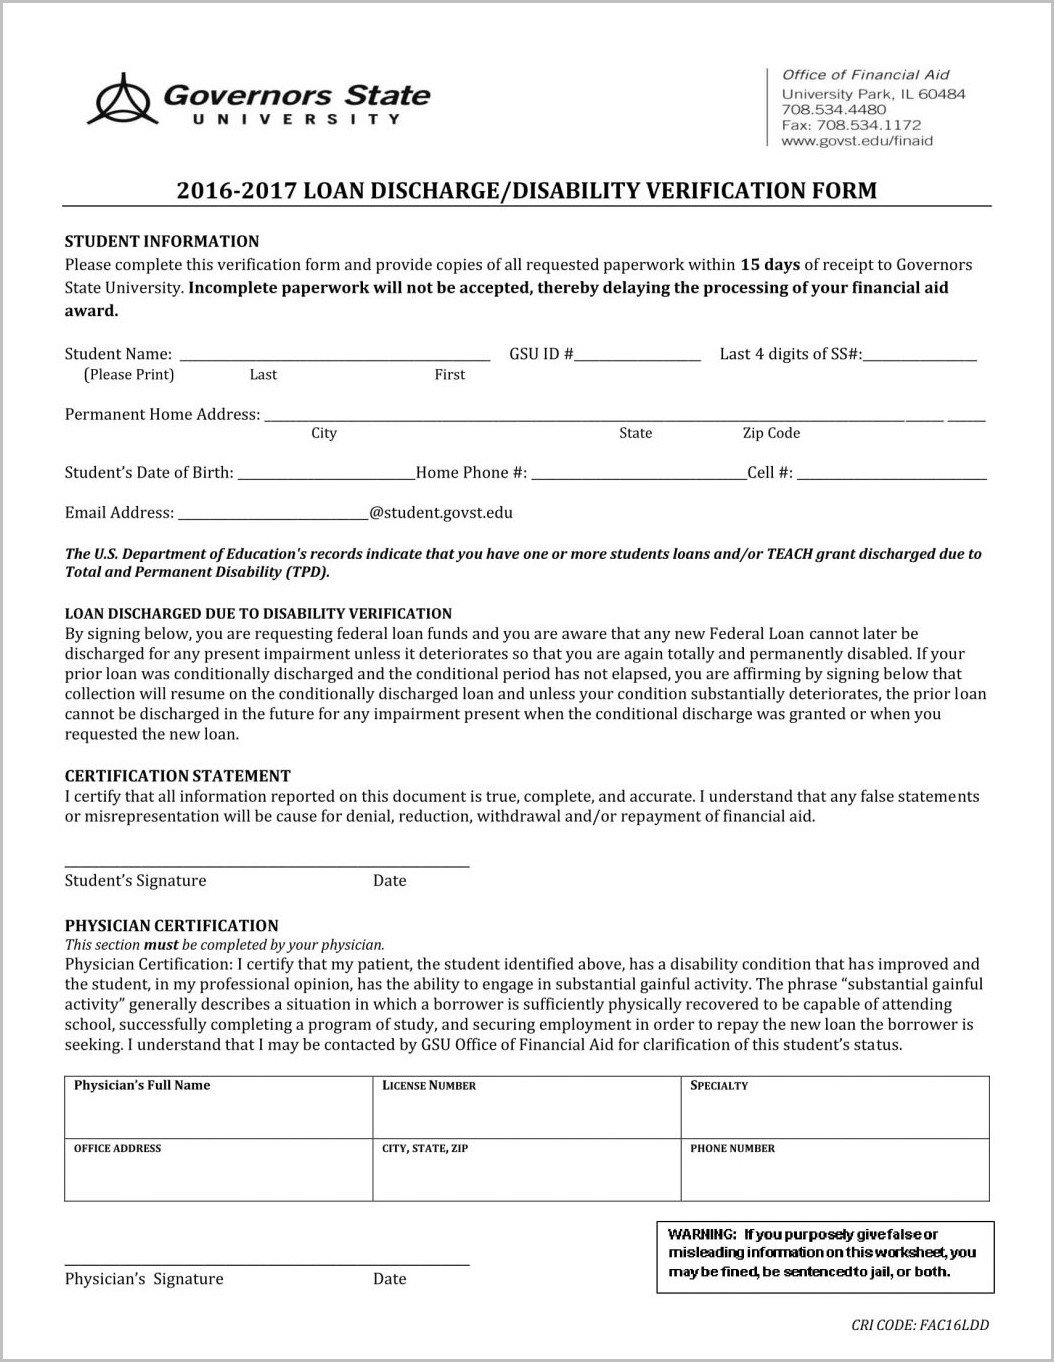 Fmla forms California Fmla forms State California form Resume Examples